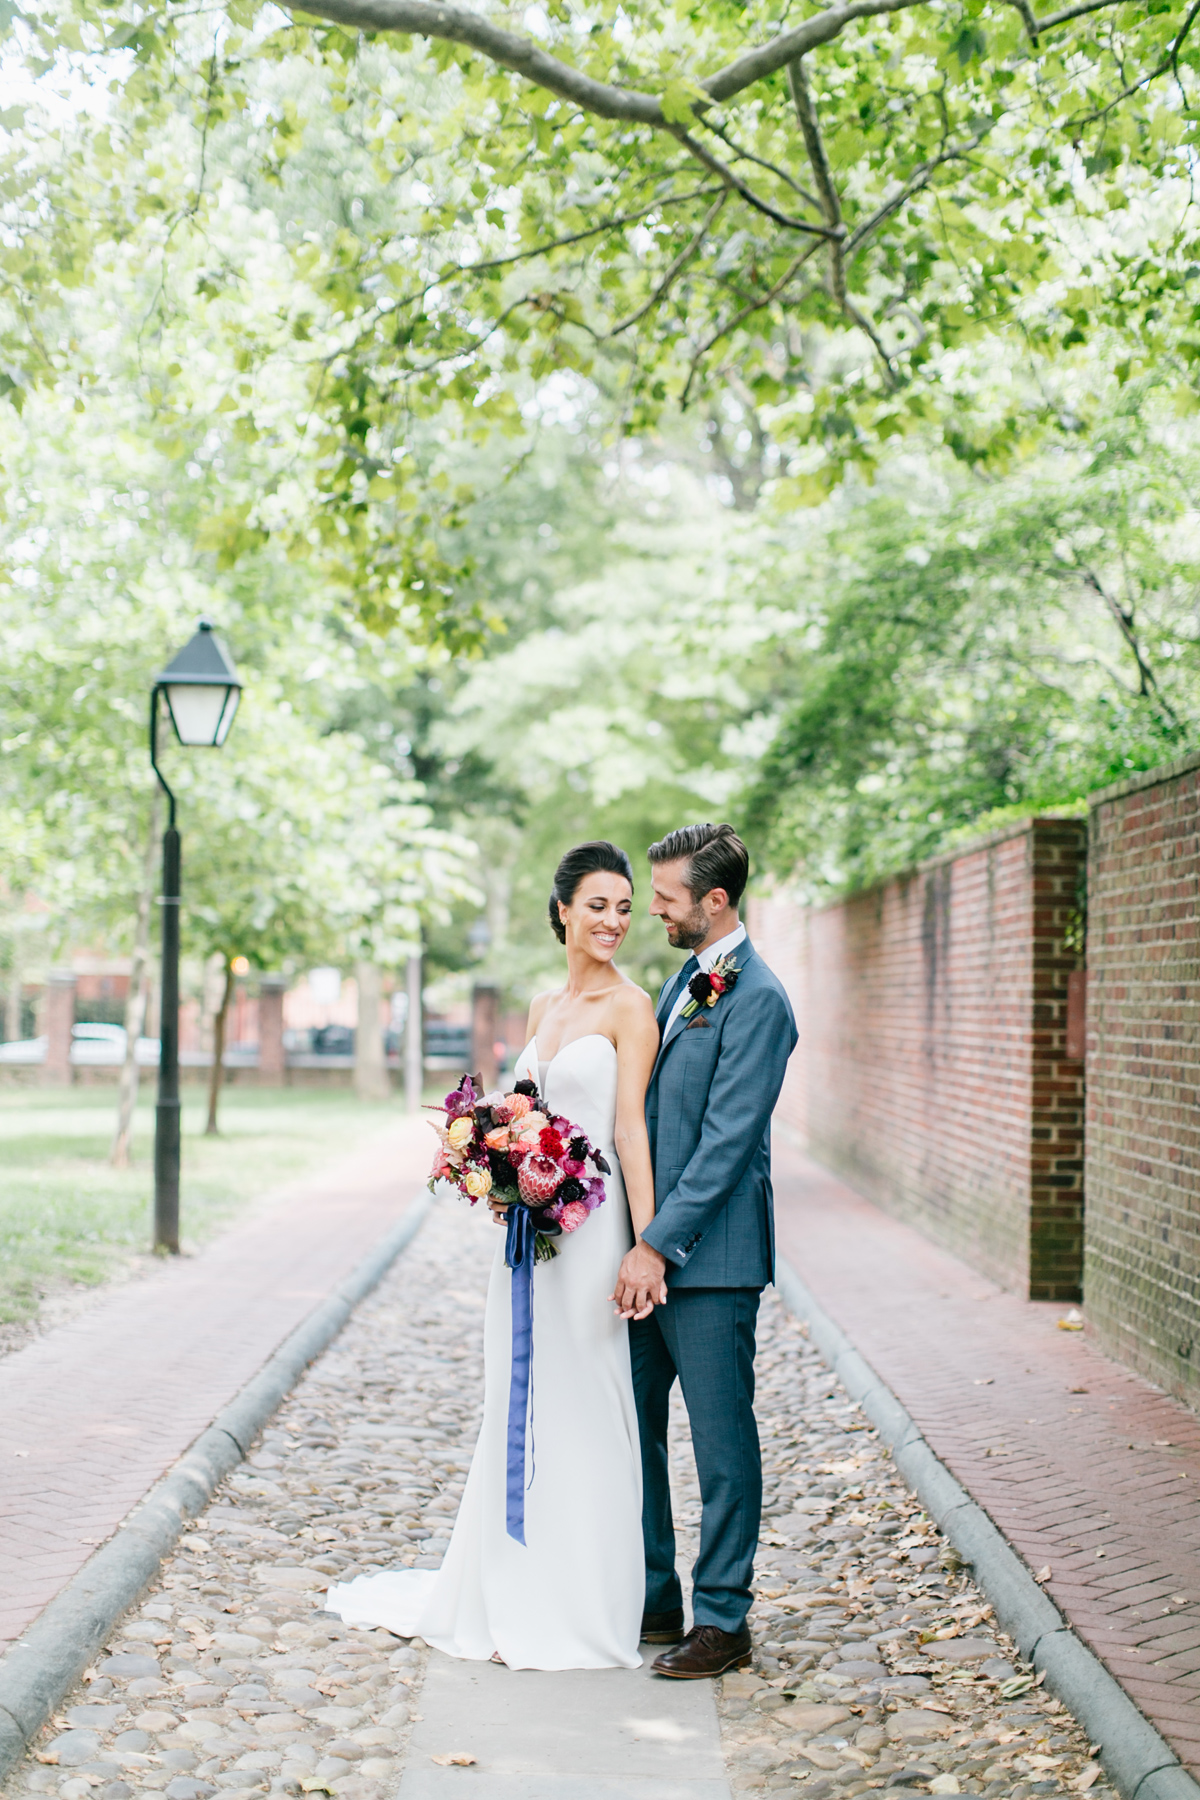 Elegant Cira Center Wedding | Philadelphia Wedding Photographer | Emily Wren